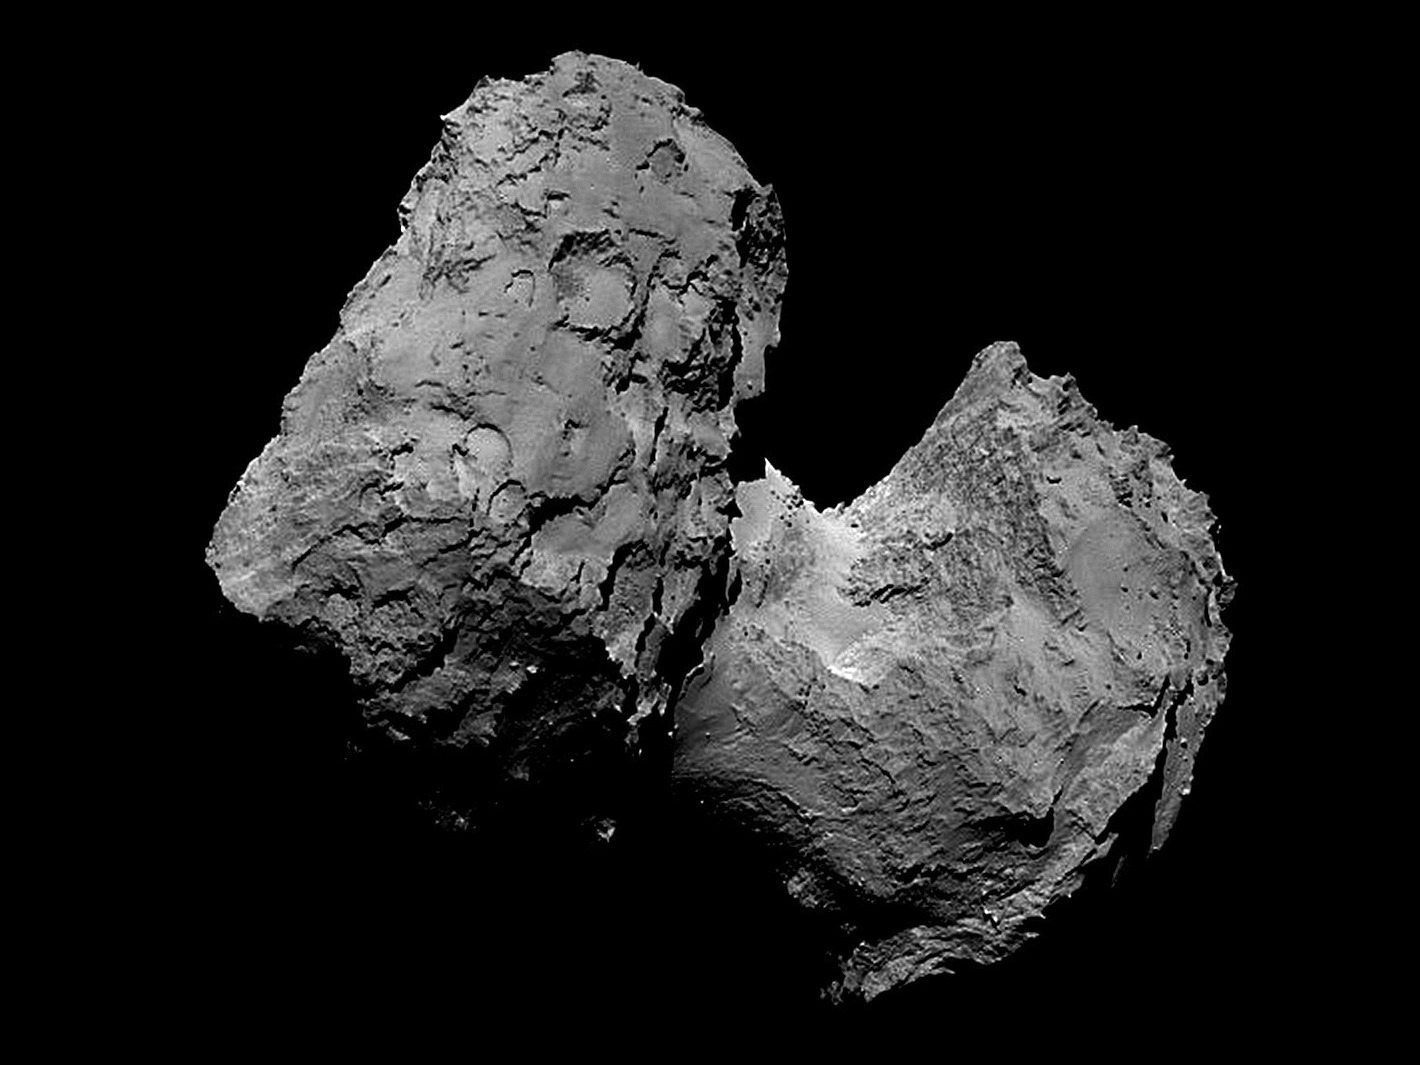 """The bizarre rubber duck-shaped nucleus of Comet 67P/Churyumov-Gerasimenko (67P) is """"bi-lobed,"""" meaning it has two larger parts connected by a thinner neck. Image credit: European Space Agency."""